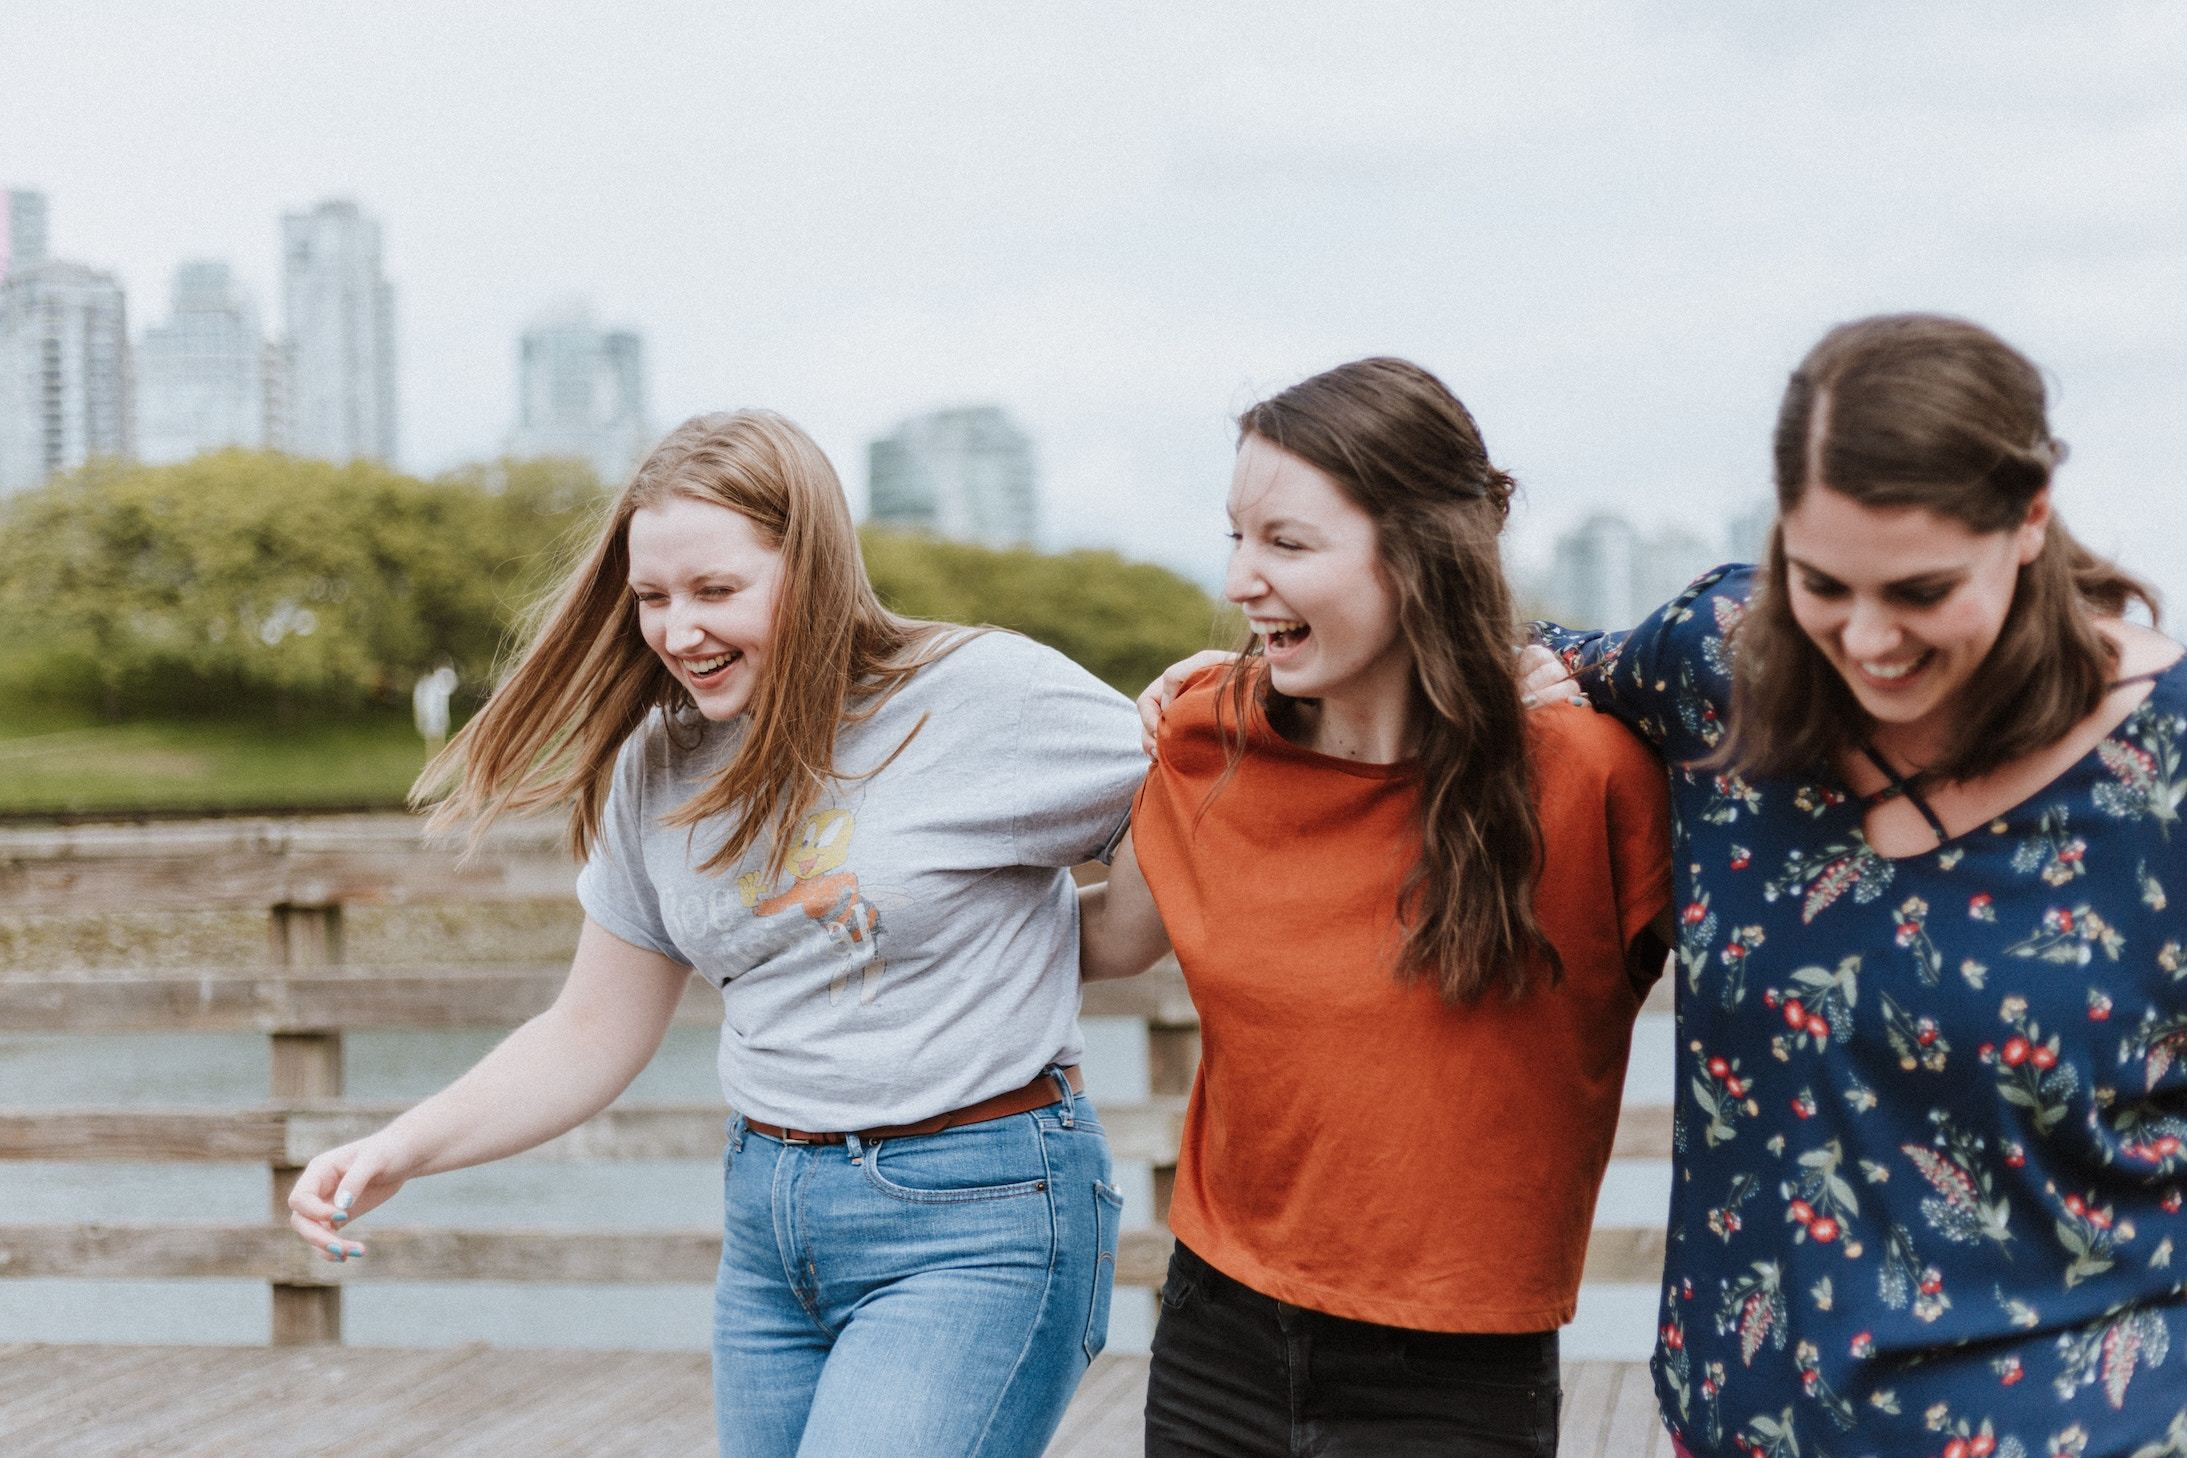 Three girls link arms and laugh